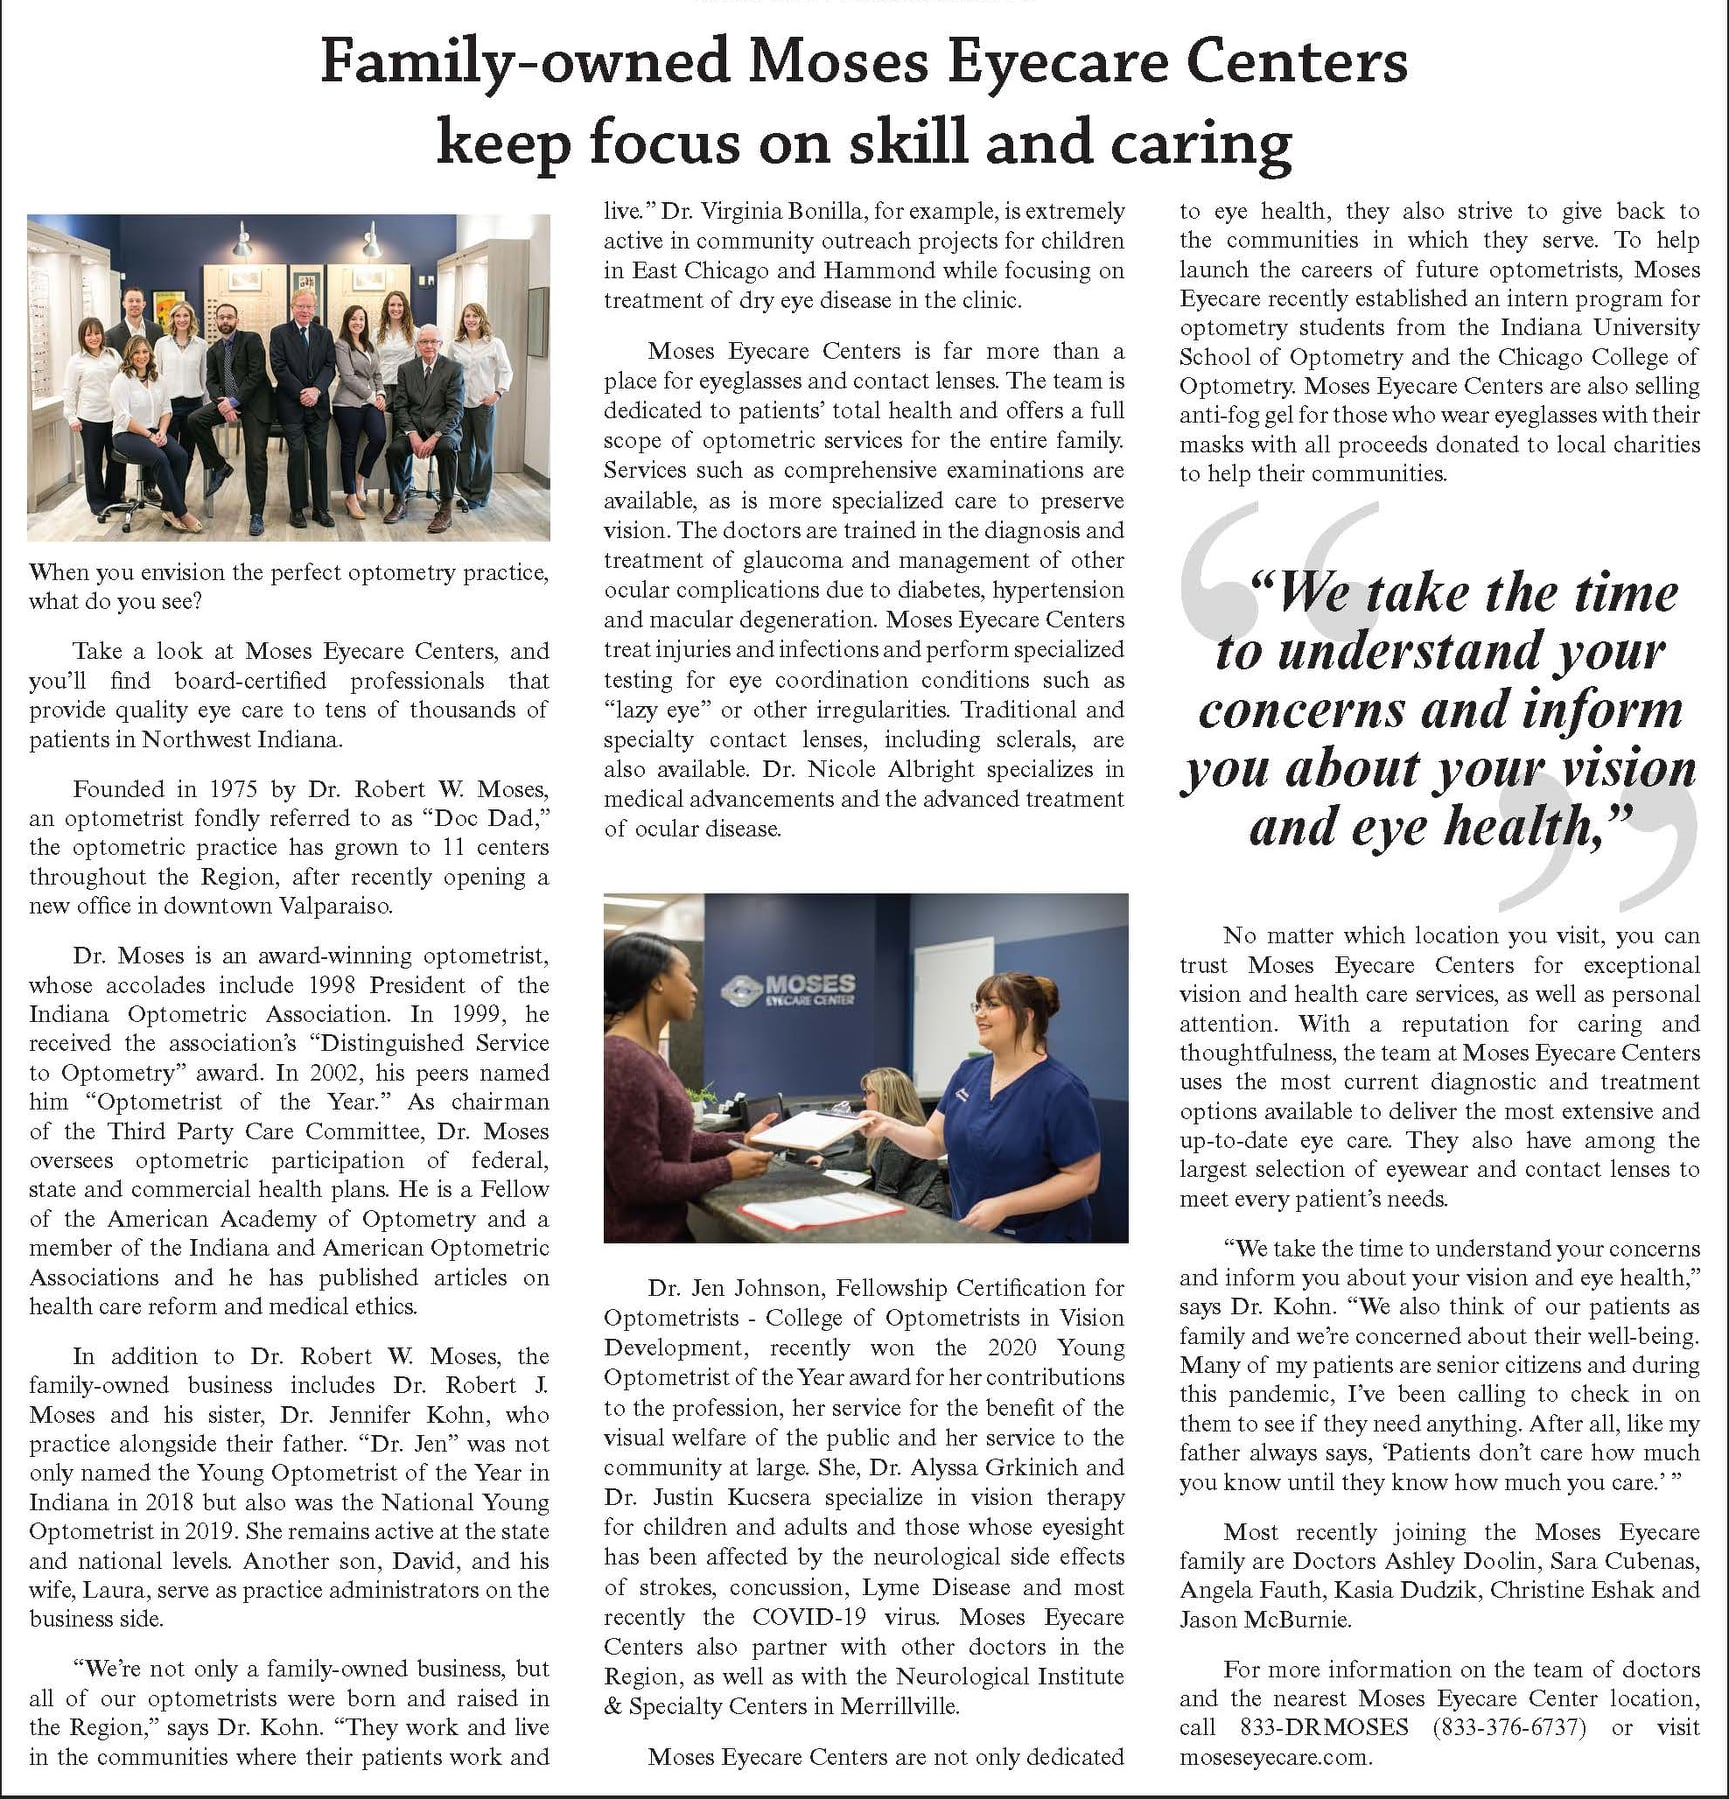 Family-owned Moses Eyecare Centers keep focus on skill and caring